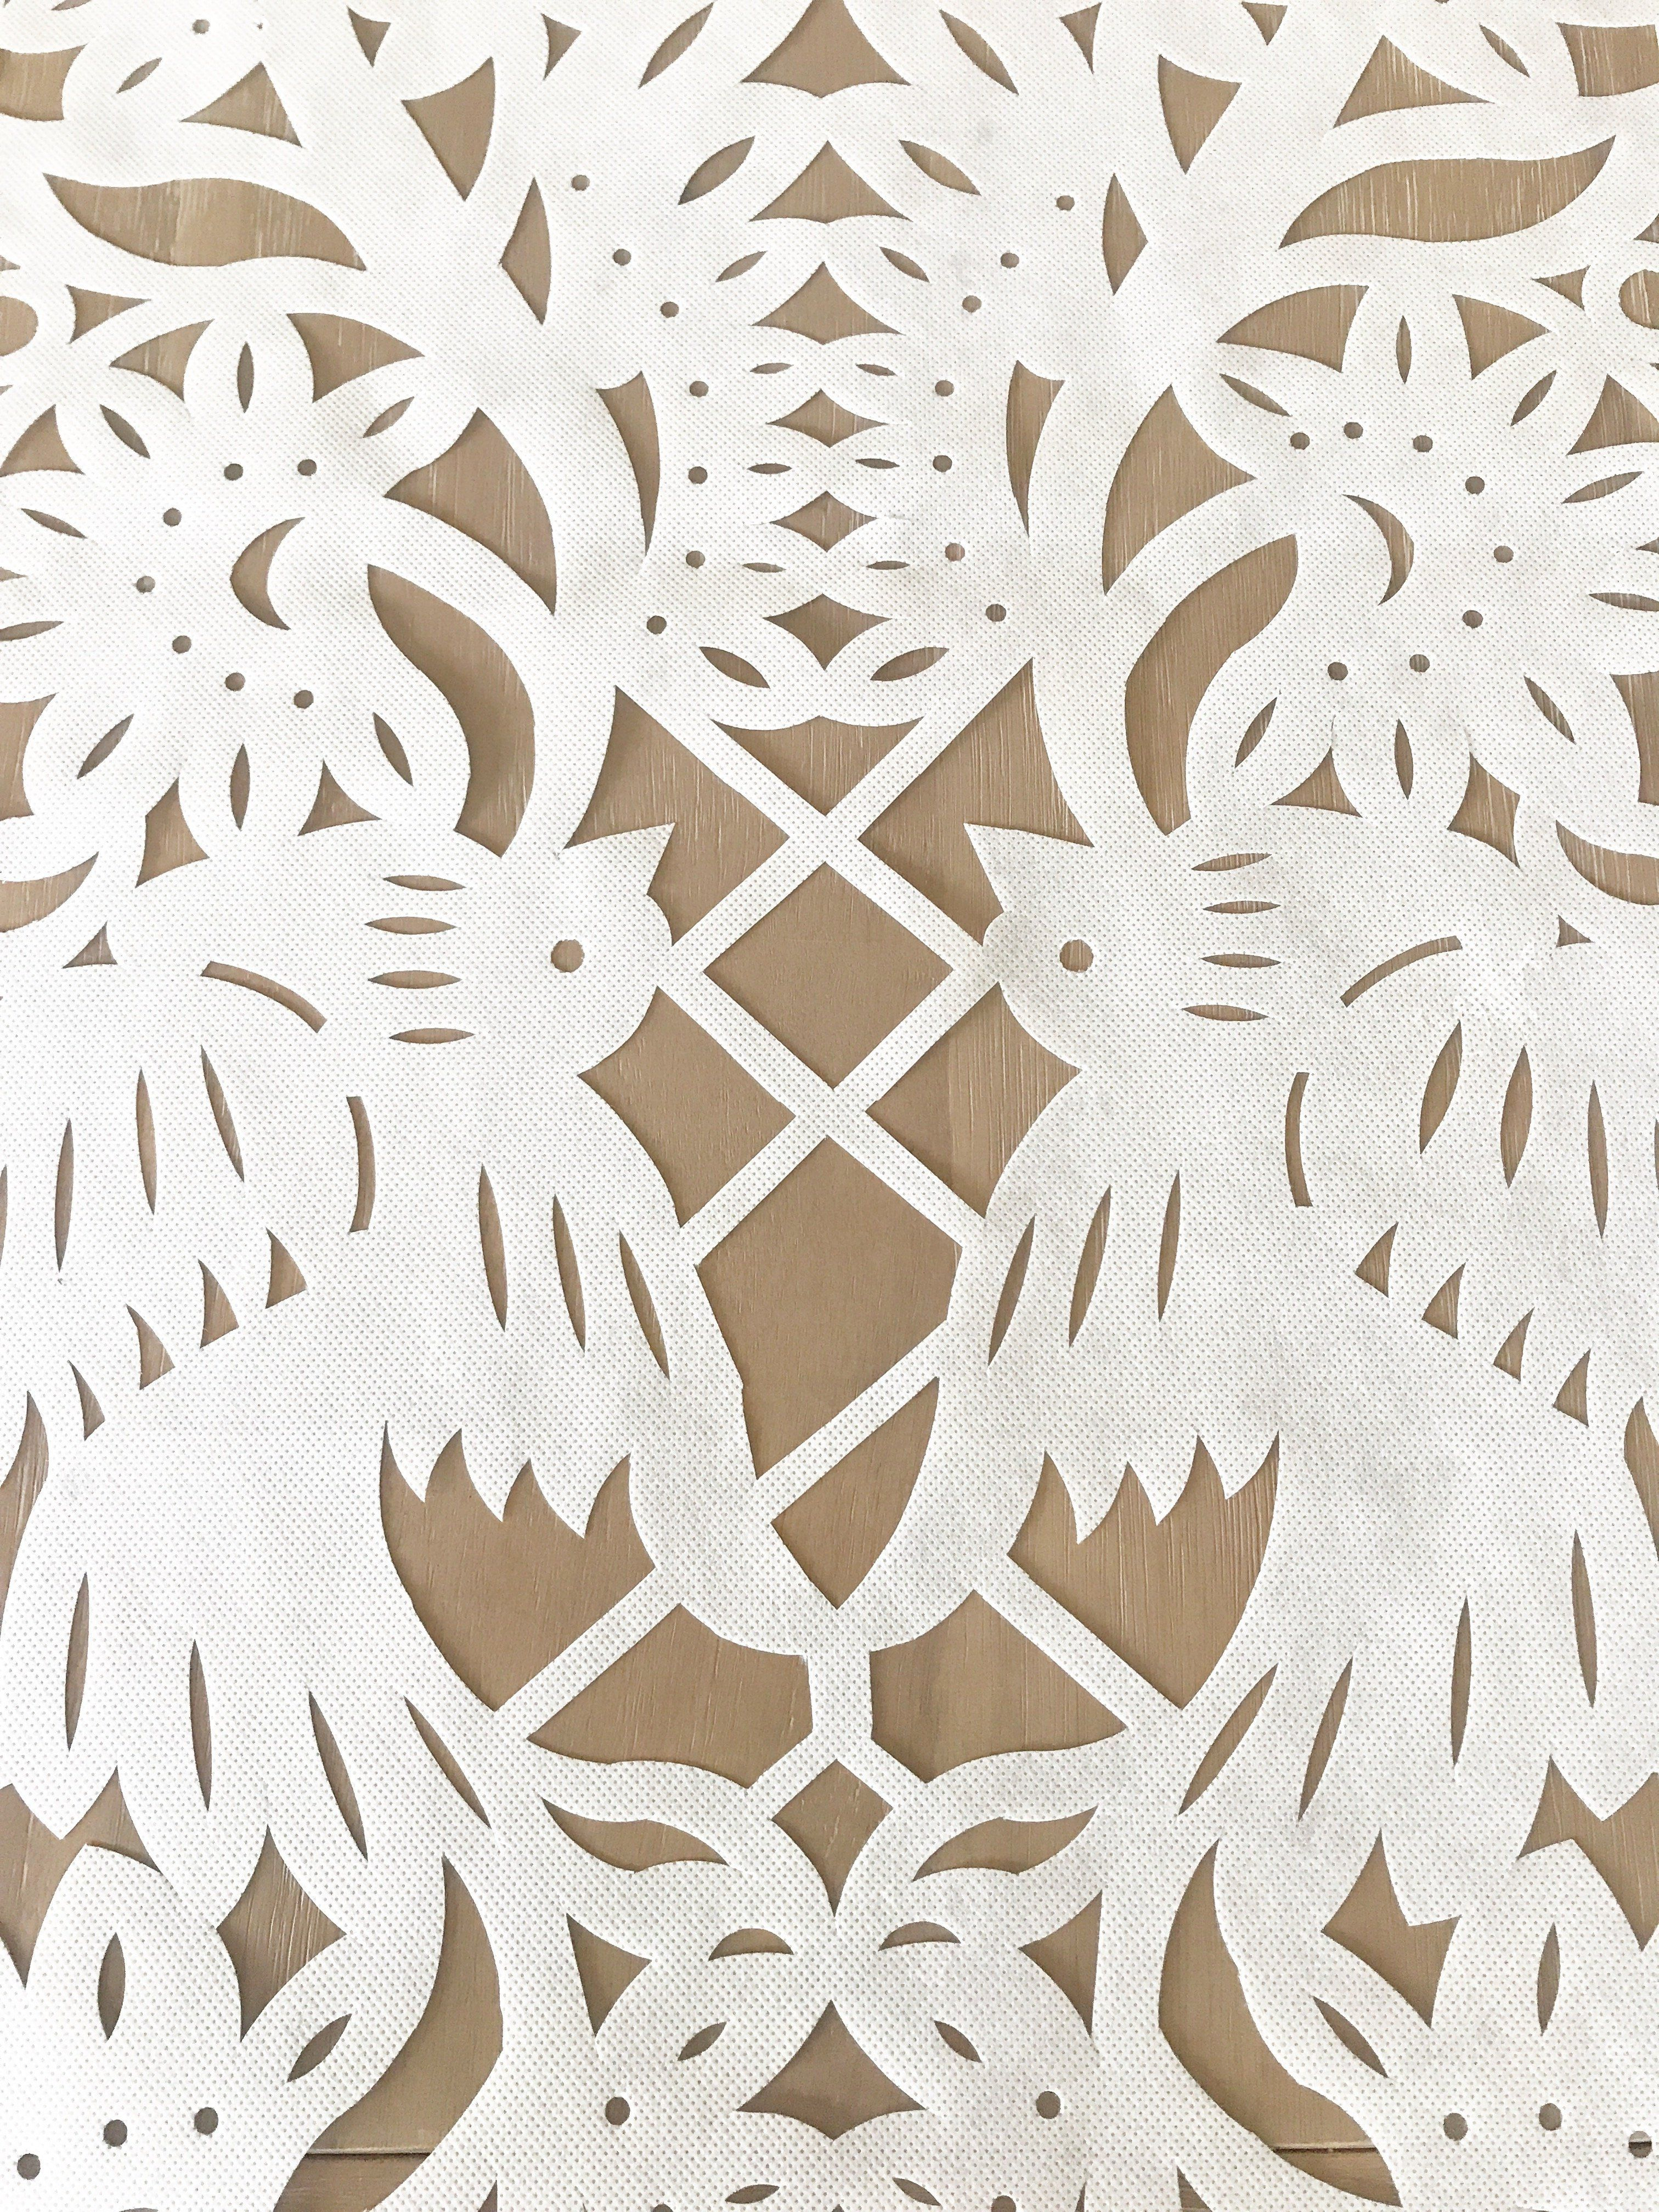 Wedding decor all white  Mexican Papel picado Table Runner in White synthetic Fabric